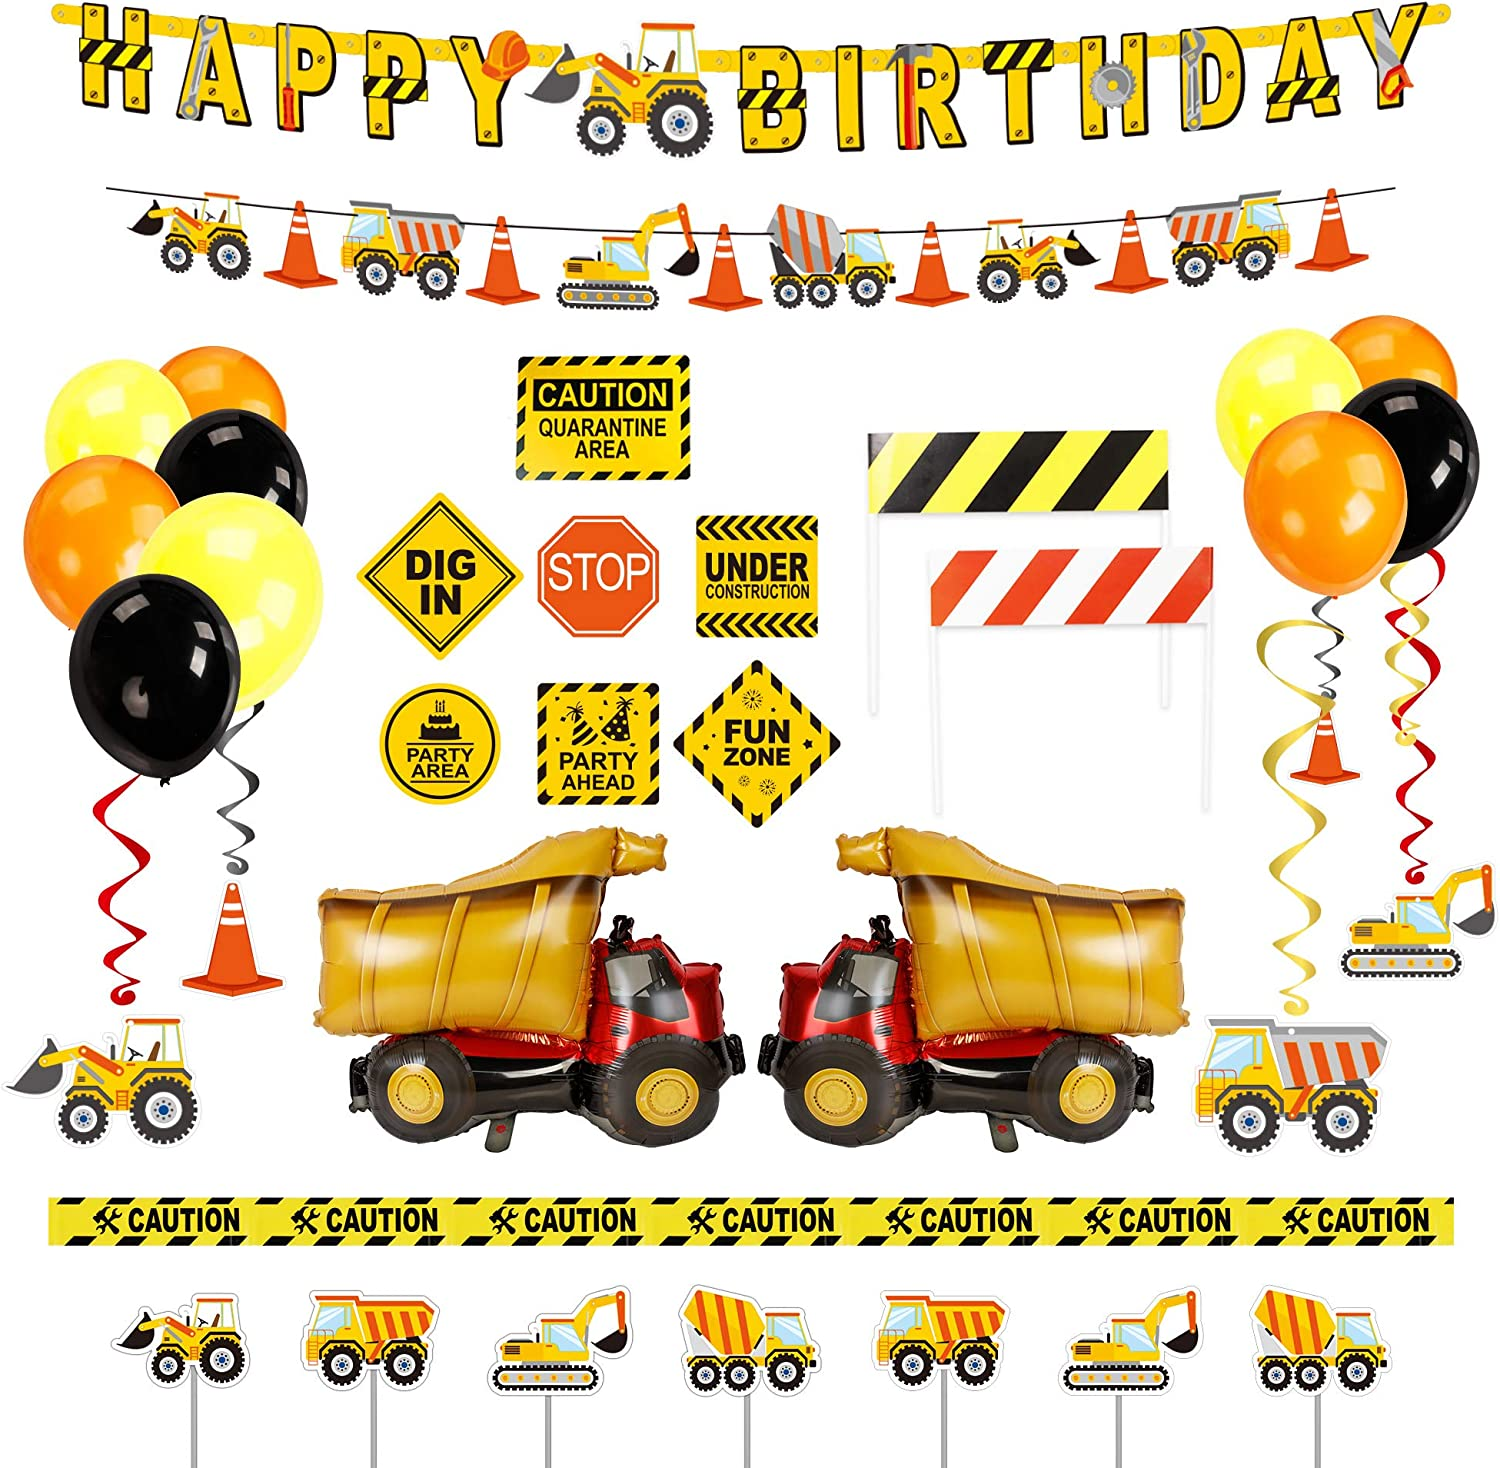 Decorlife Construction Birthday Decorations, Truck Party Decor for Boys, Including Happy Birthday Banner, Balloons, Cupcake Toppers, Caution Tape, Construction Sign Cutouts, Vehicle Banner, Barricades, Hang Swirls